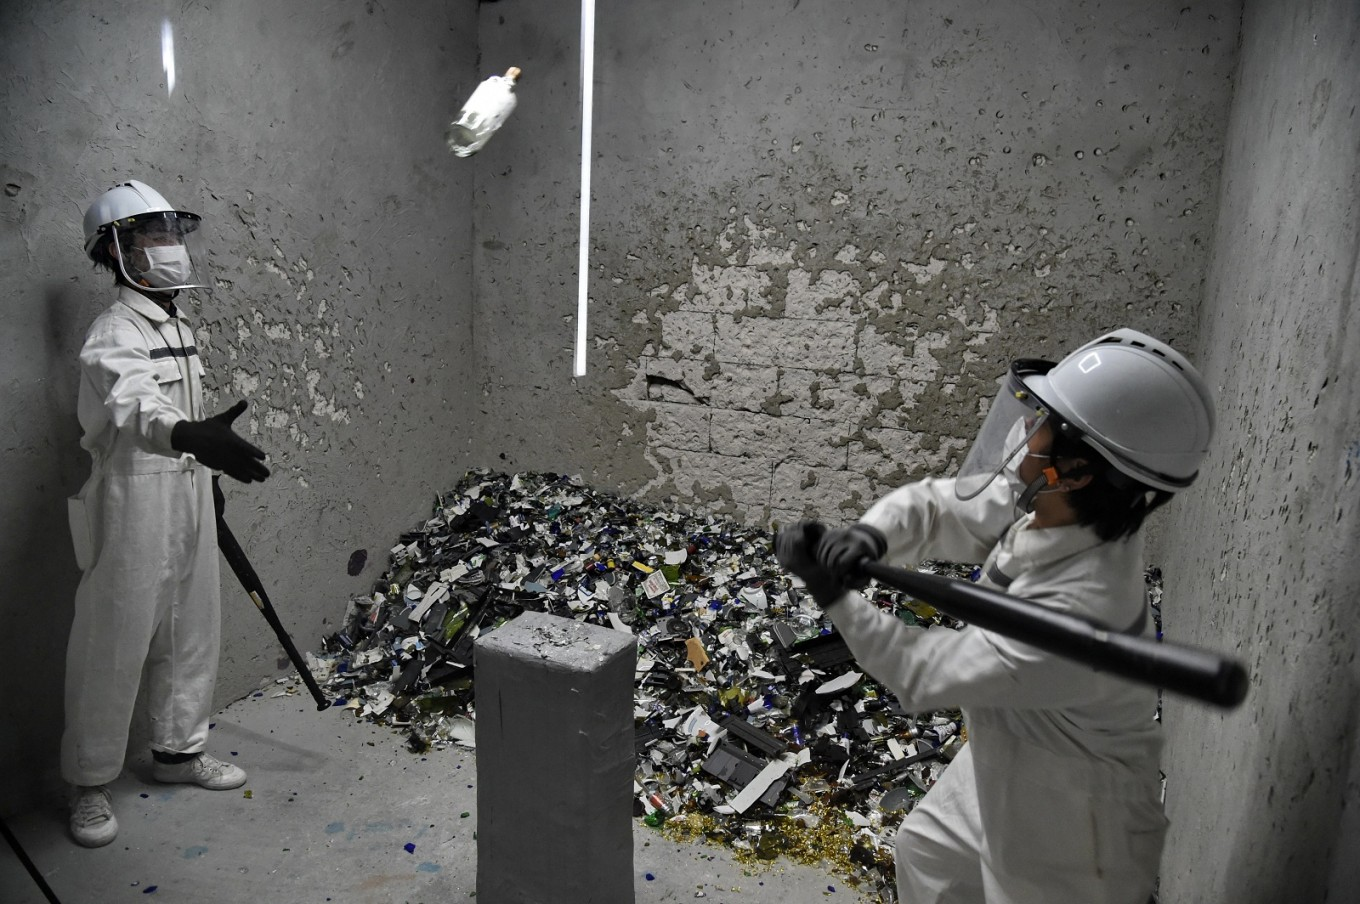 Singaporeans with appetite for destruction get 'rage room' relief